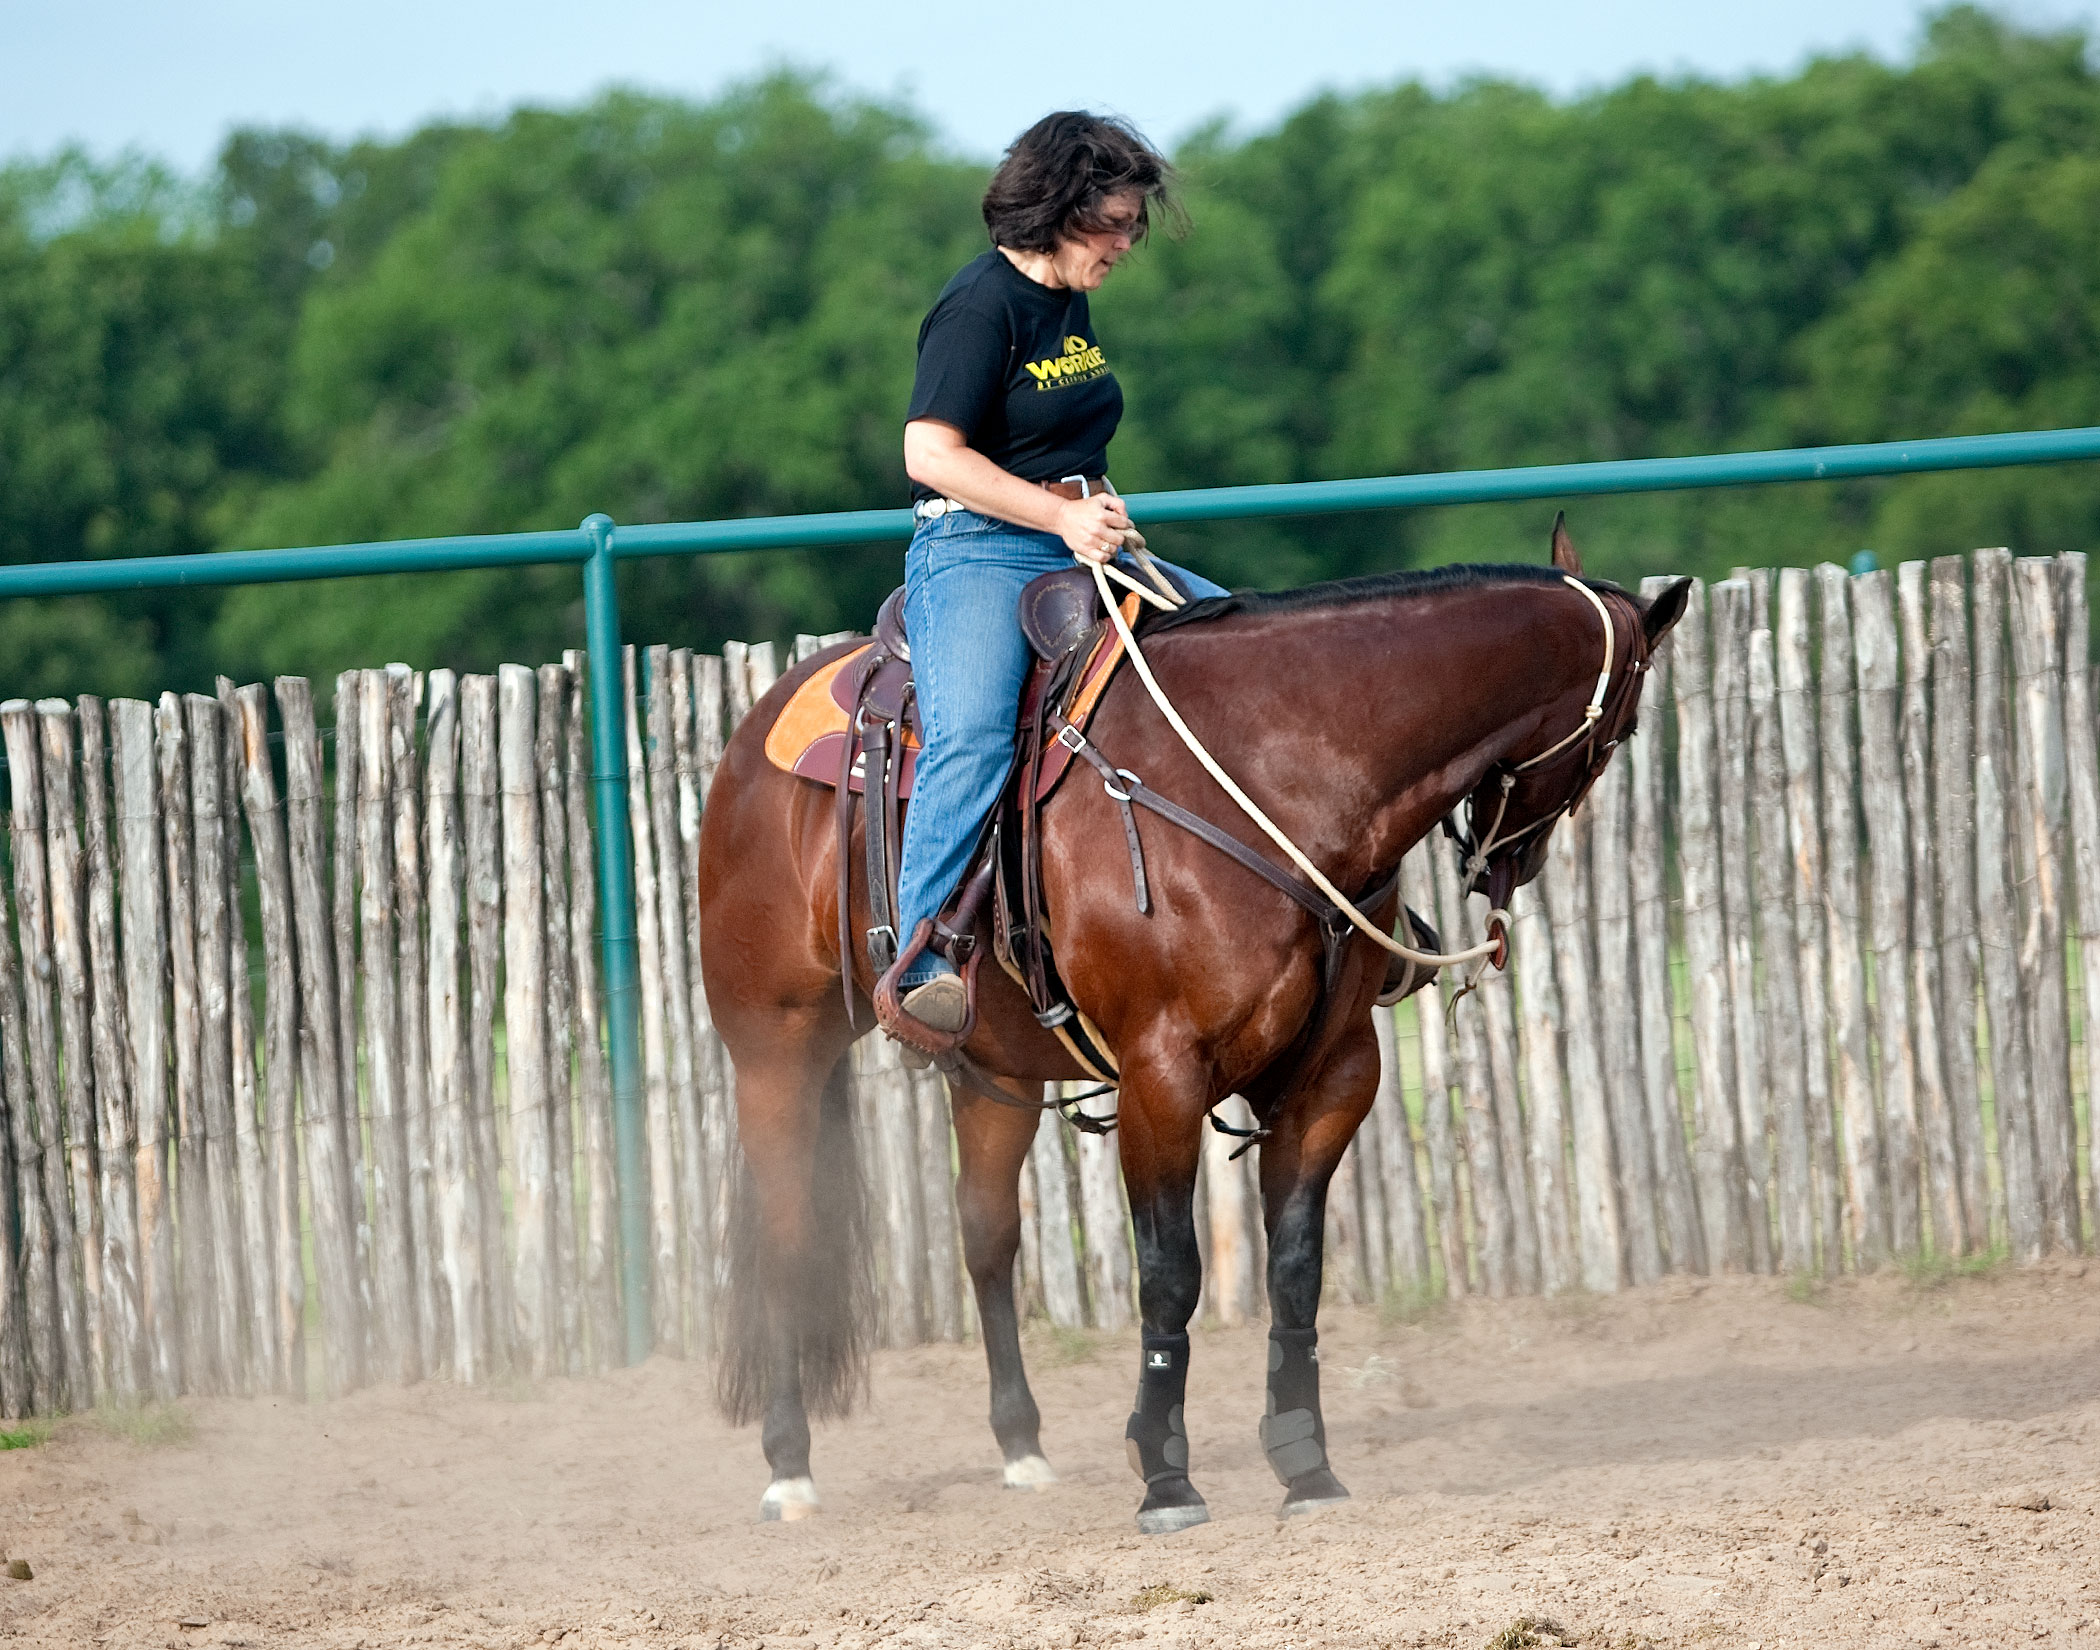 Touch horse's nose to stirrup or boot.